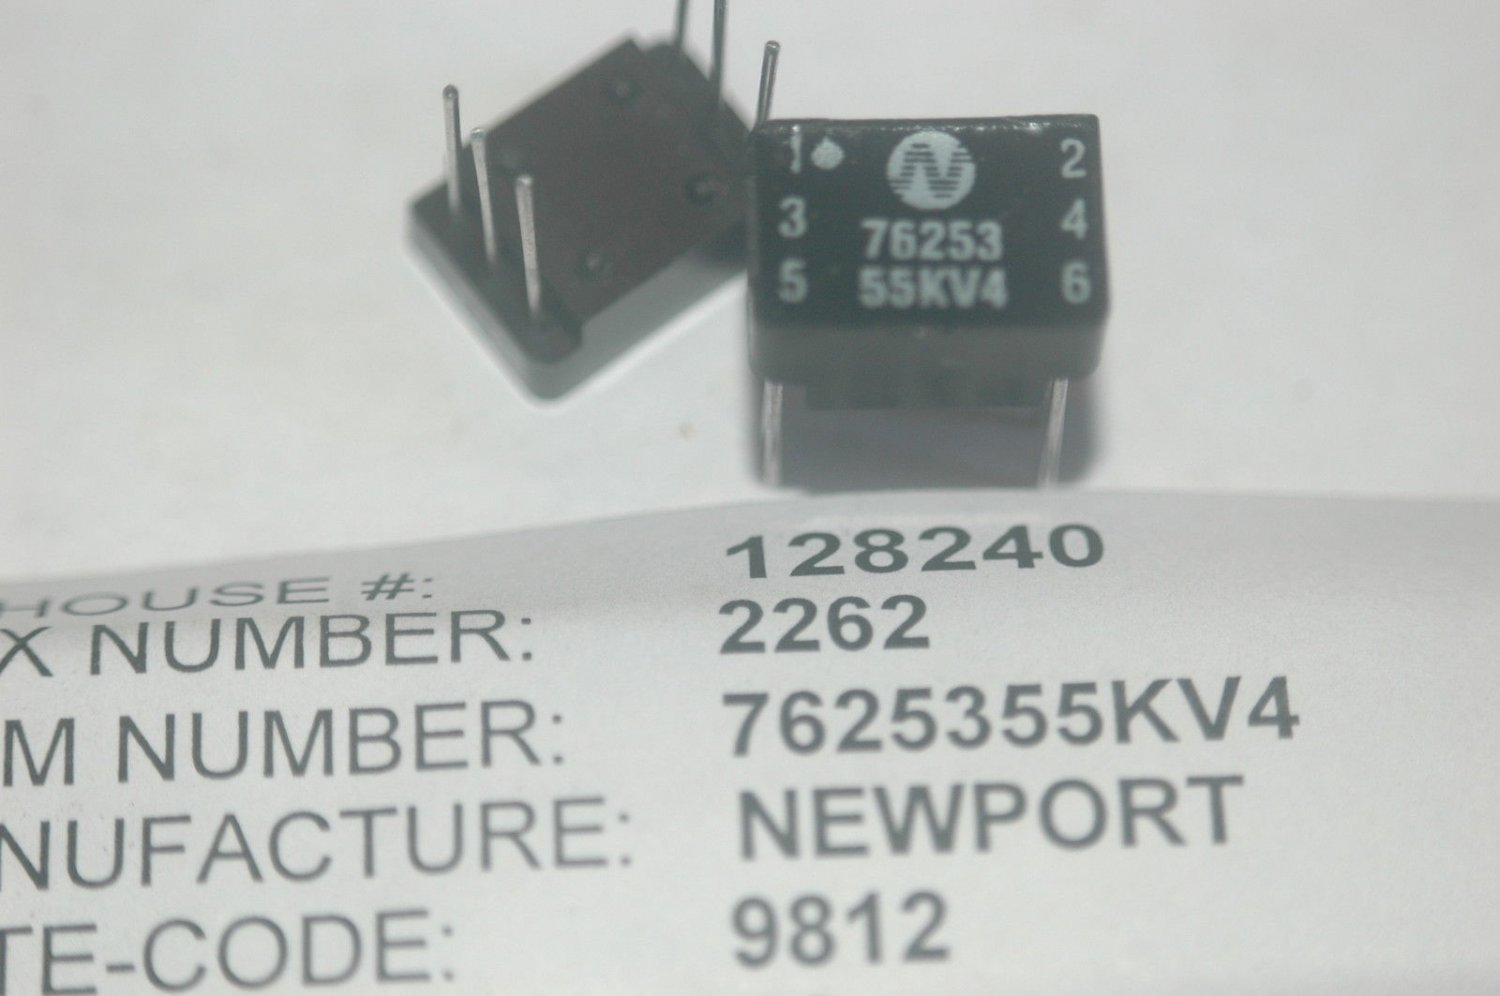 NEWPORT 7625355KV4 6-Pin Through Hole Vintage Relay Lot Quantity-2